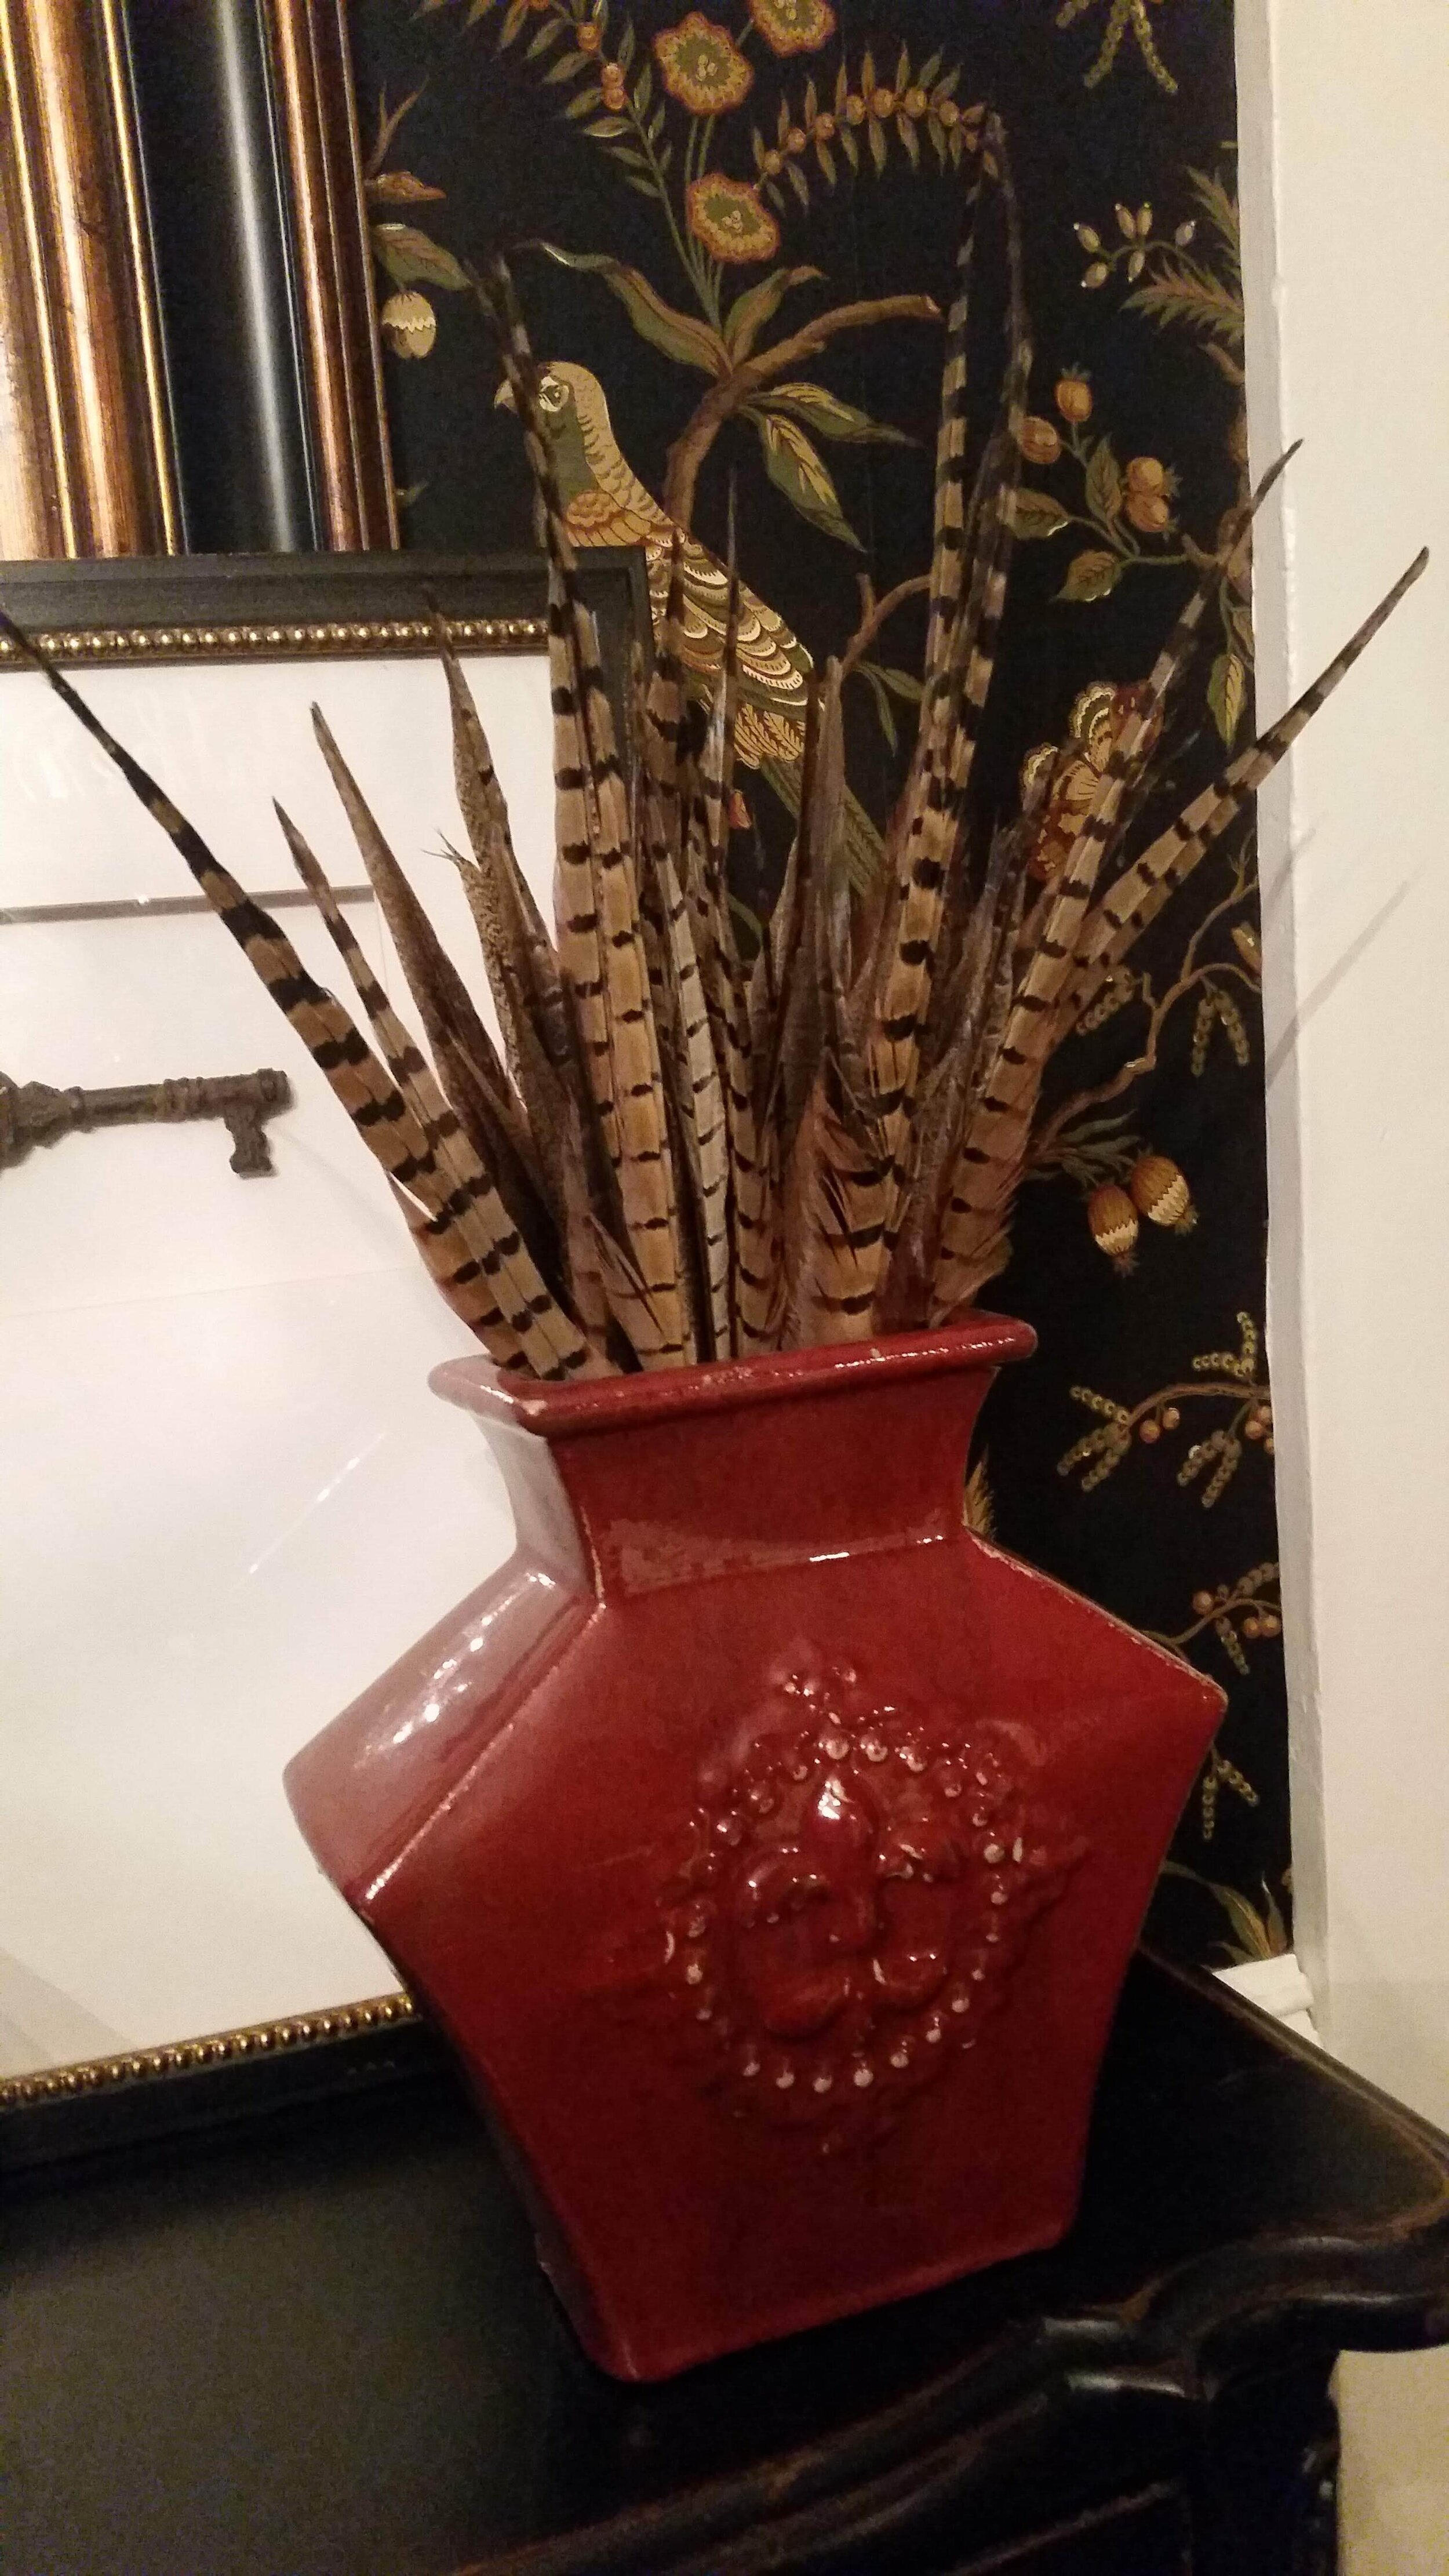 Lori finds that pheasant feathers add a great texture for fall!